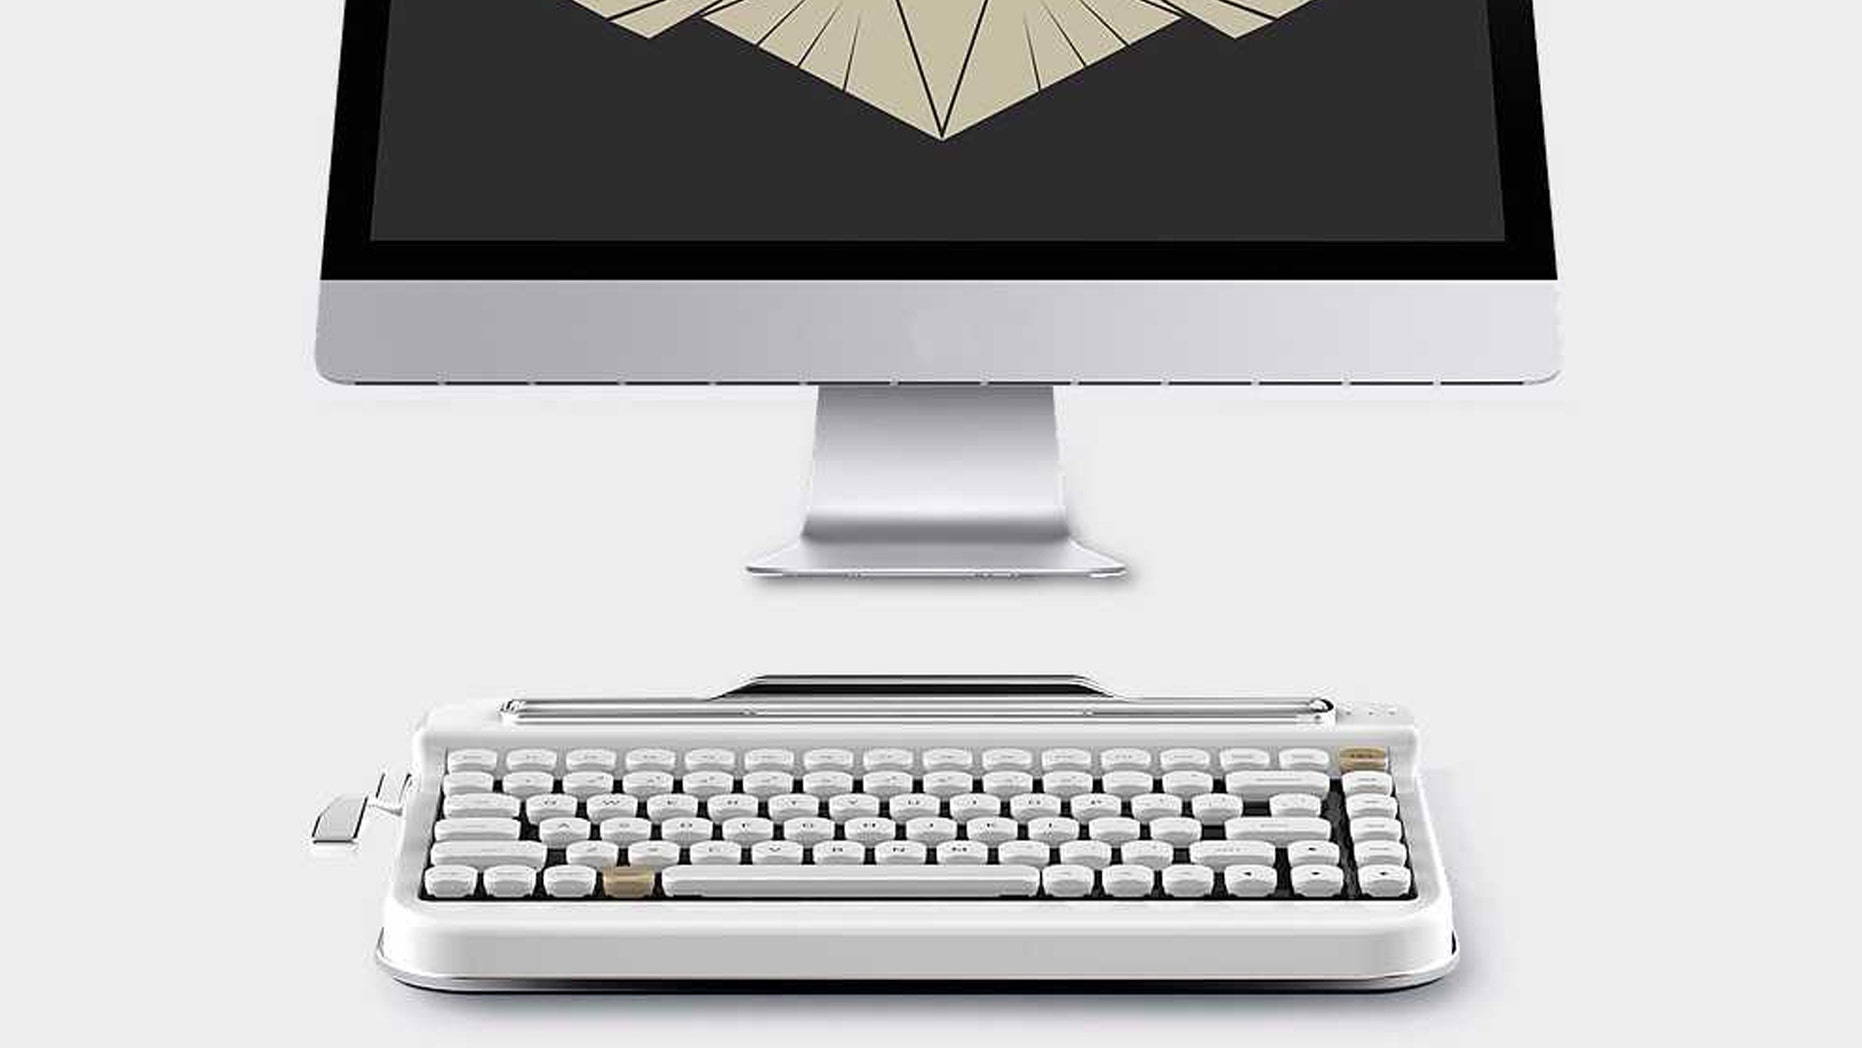 """Penna Wireless Bluetooth Keyboard"" (Credit: Elretron)"